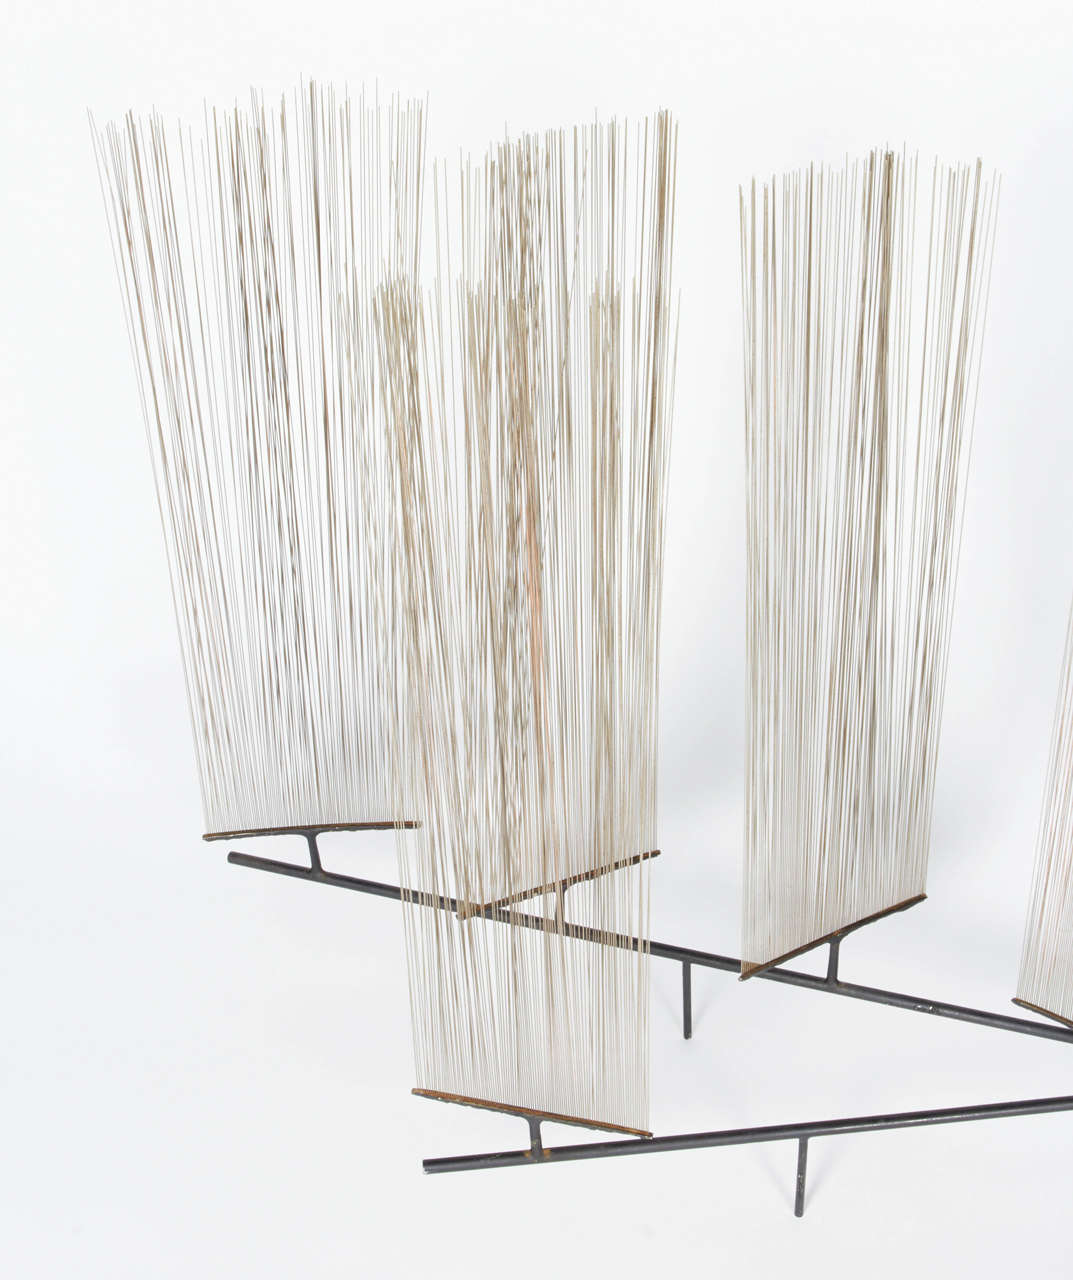 Harry Bertoia Early Wire Form Sculpture, Untitled 4